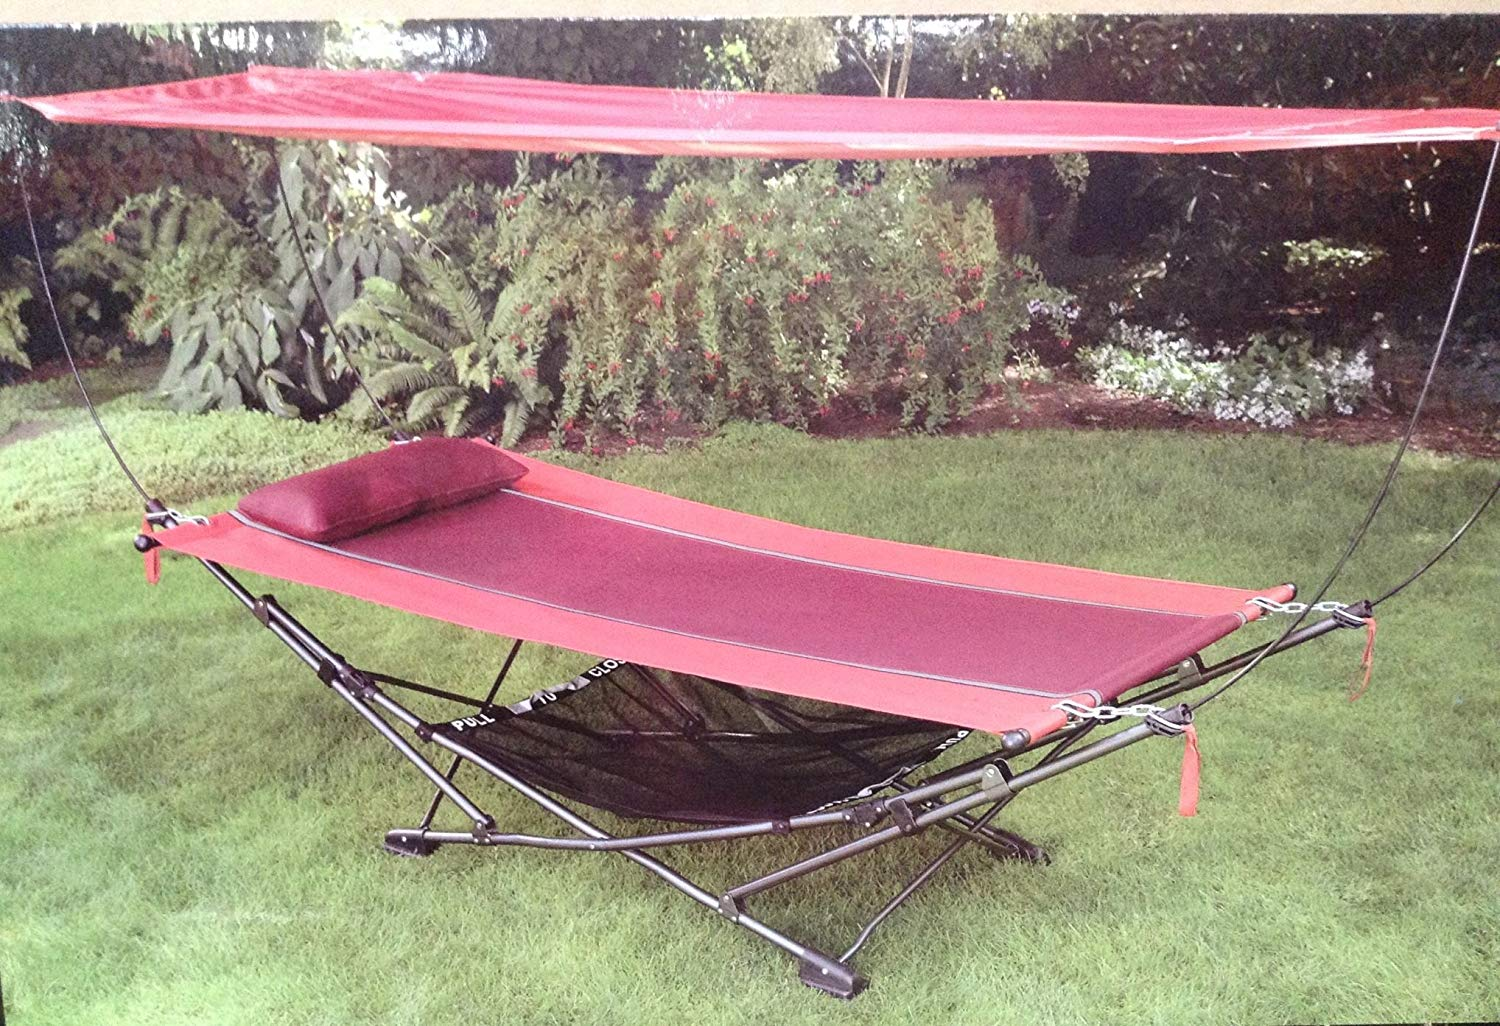 amazon.com : foldable, steel-frame hammock with canopy : garden u0026 outdoor PXABTDN